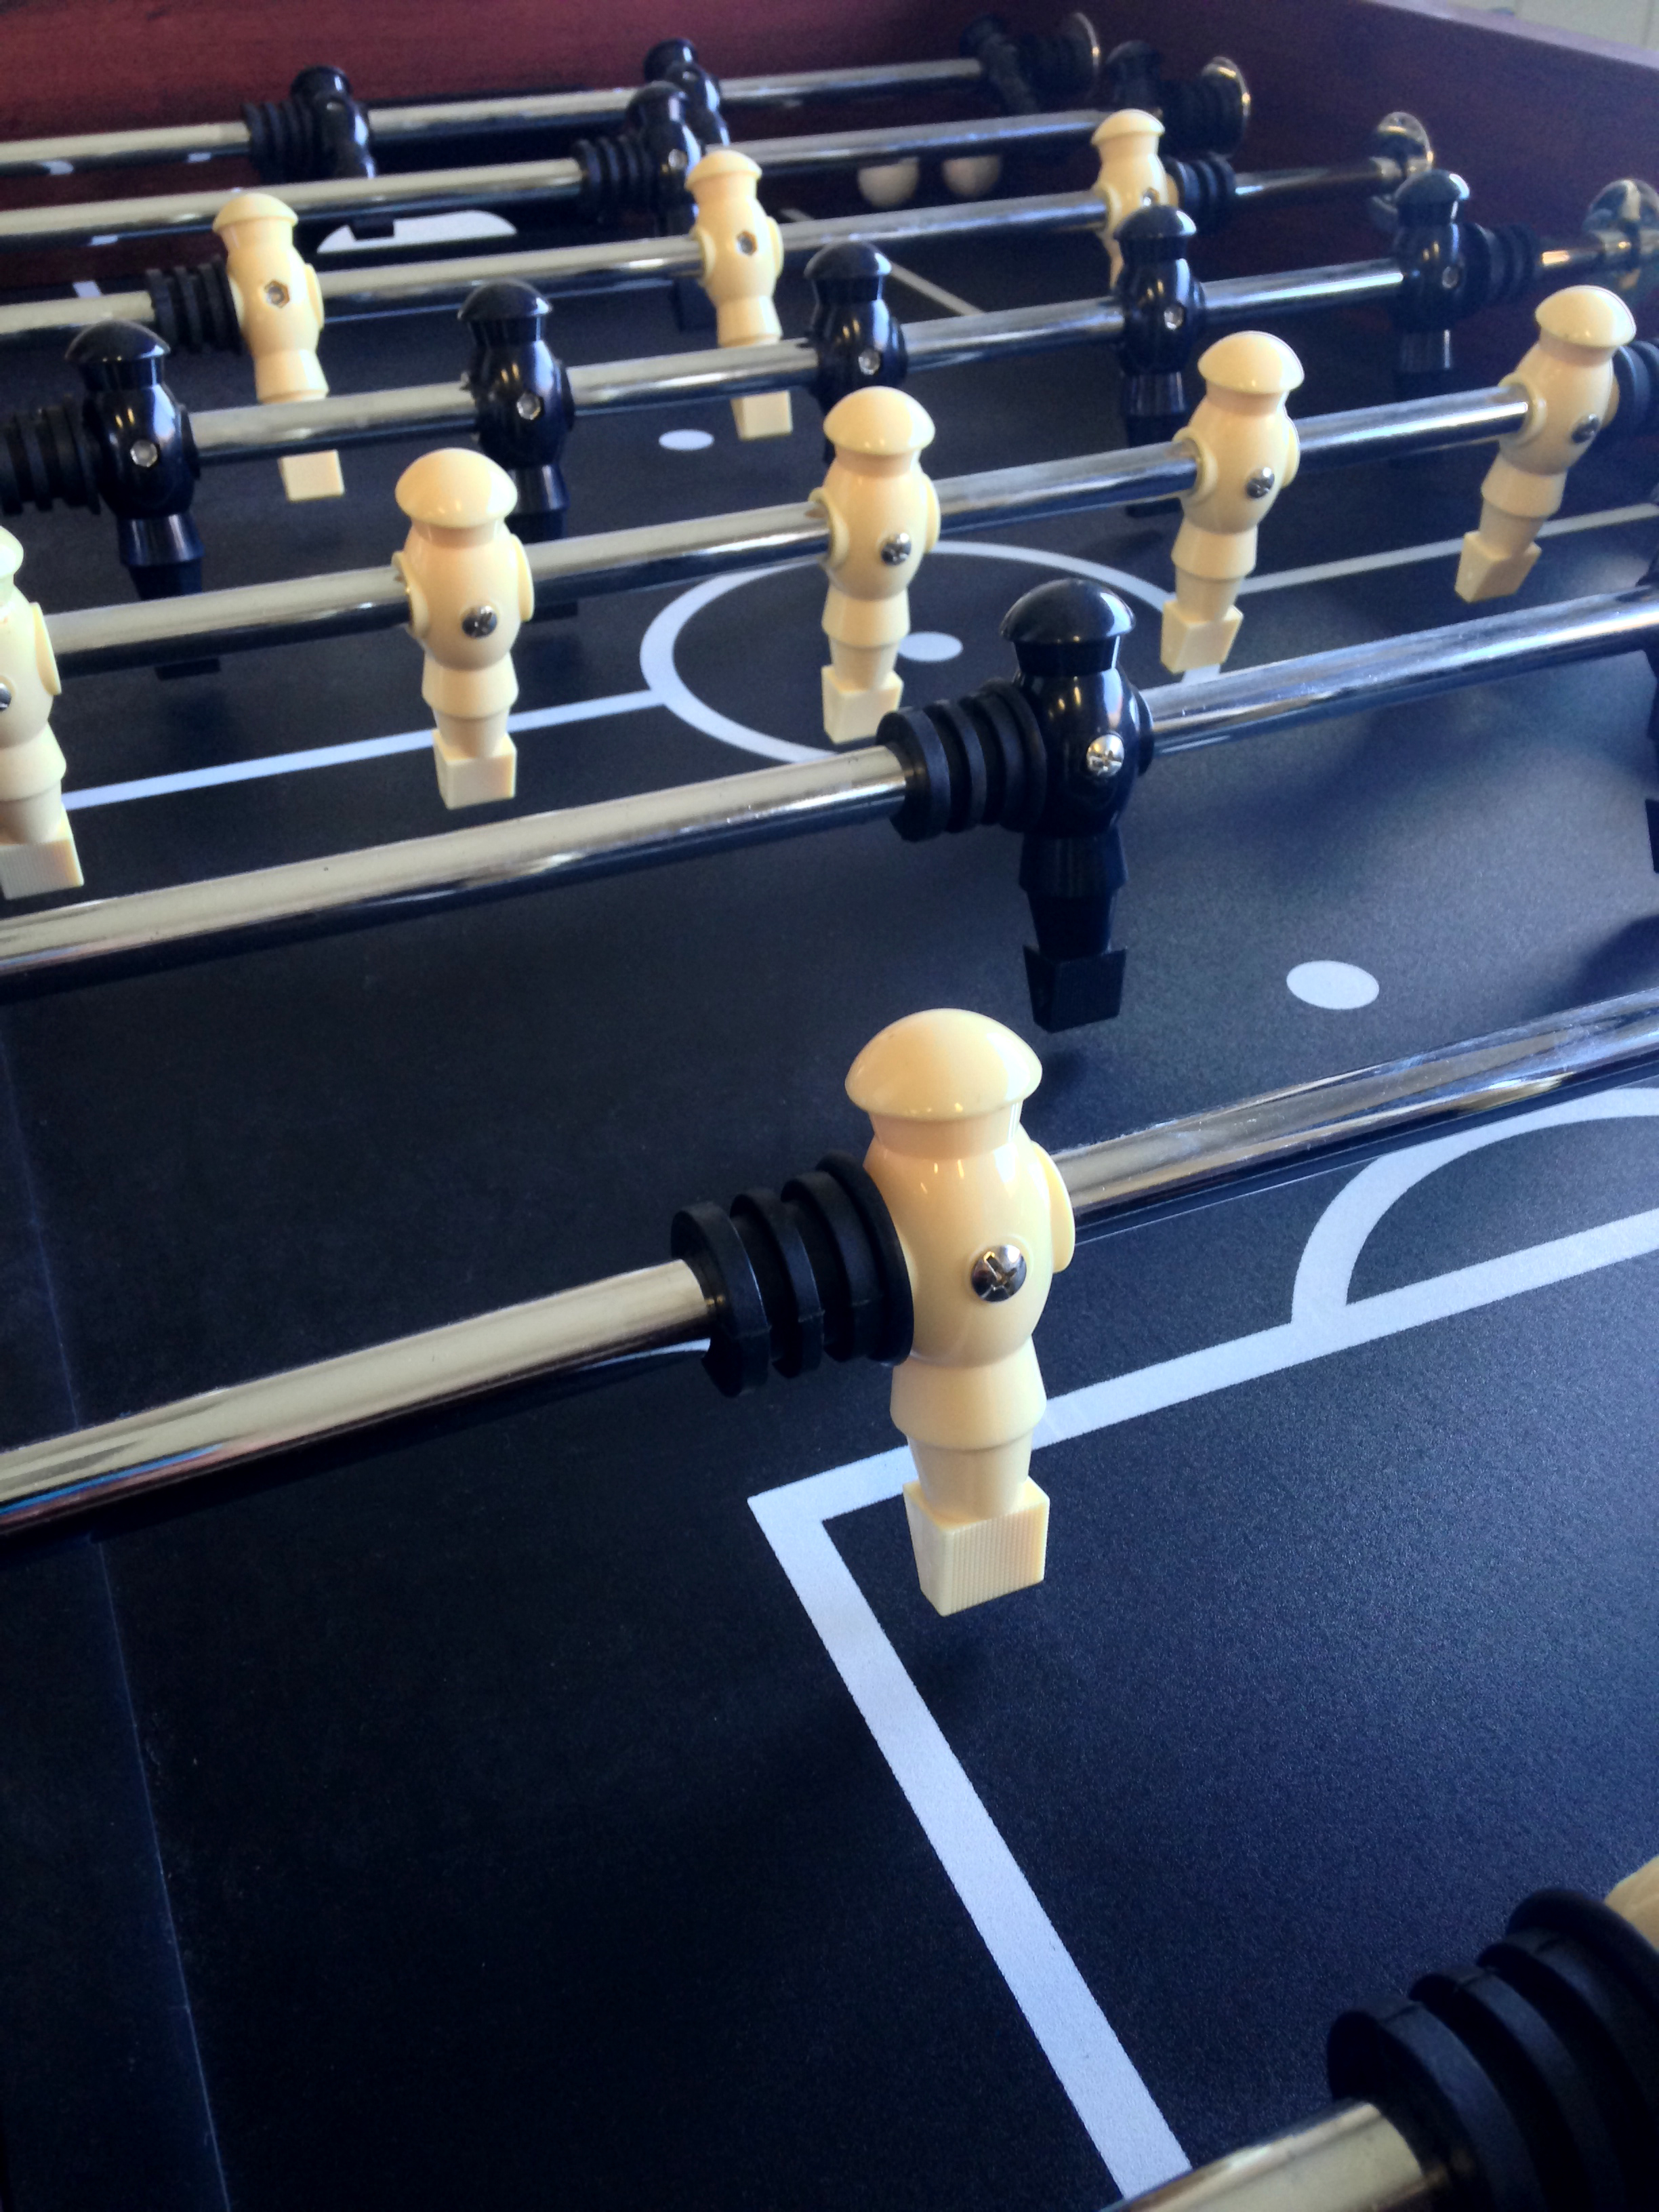 Fussball table players close up, Arcade, Game, Players, Soccer, HQ Photo